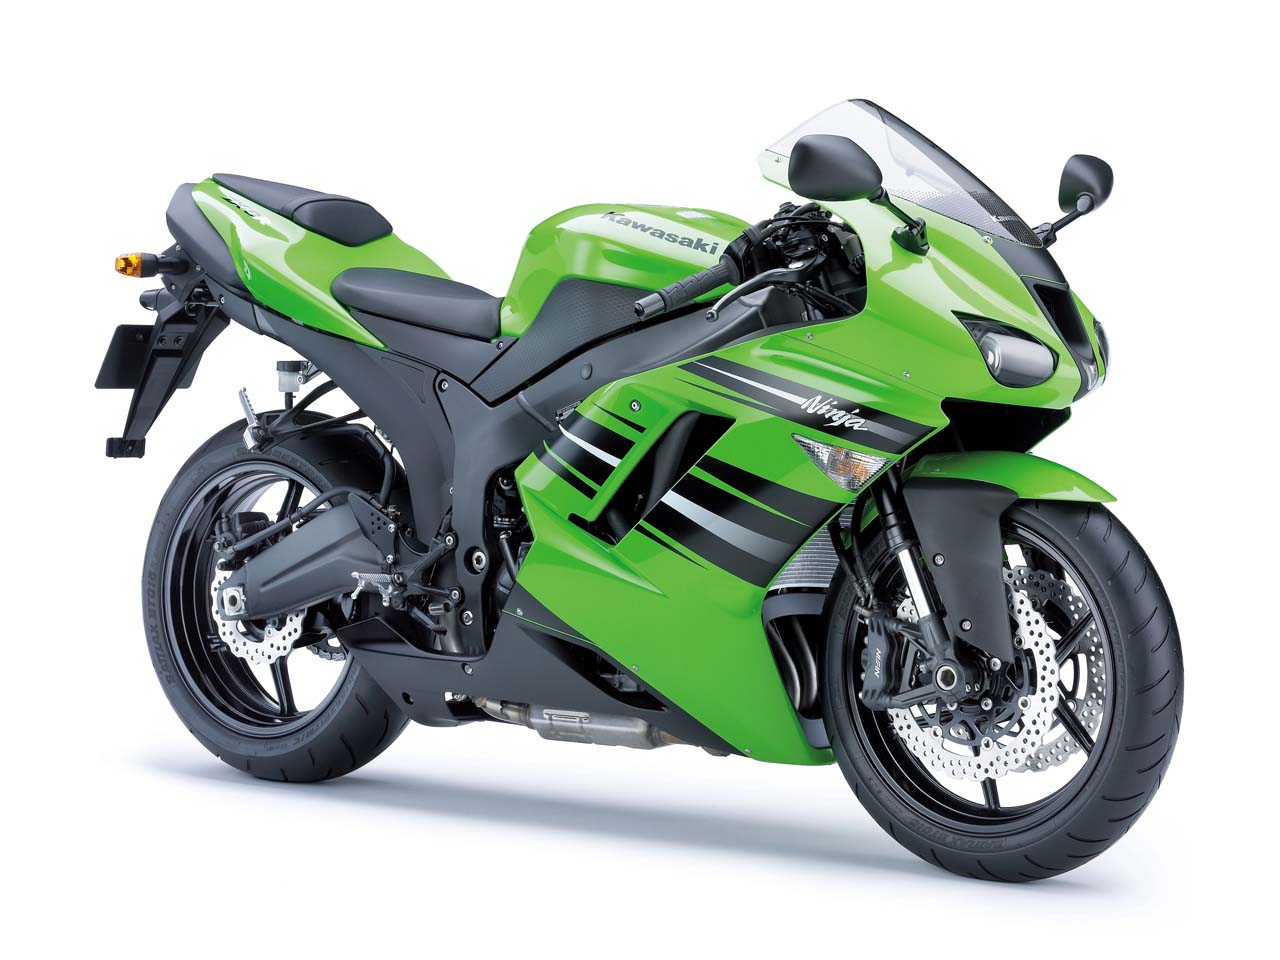 kawasaki ninja zx 6r sports bike. Black Bedroom Furniture Sets. Home Design Ideas